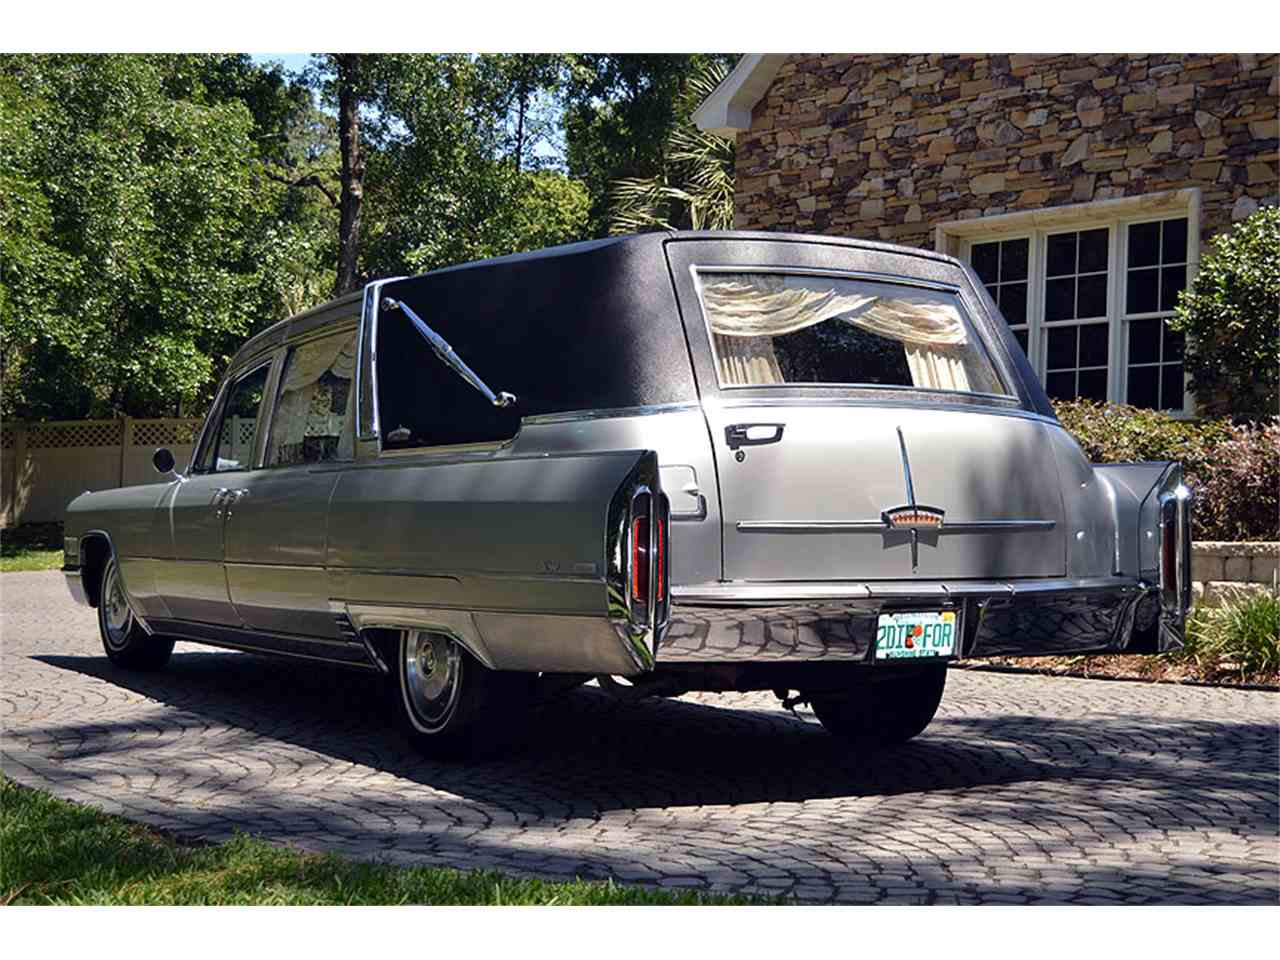 1966 Cadillac Crown Sovereign Funeral Coach for Sale ...